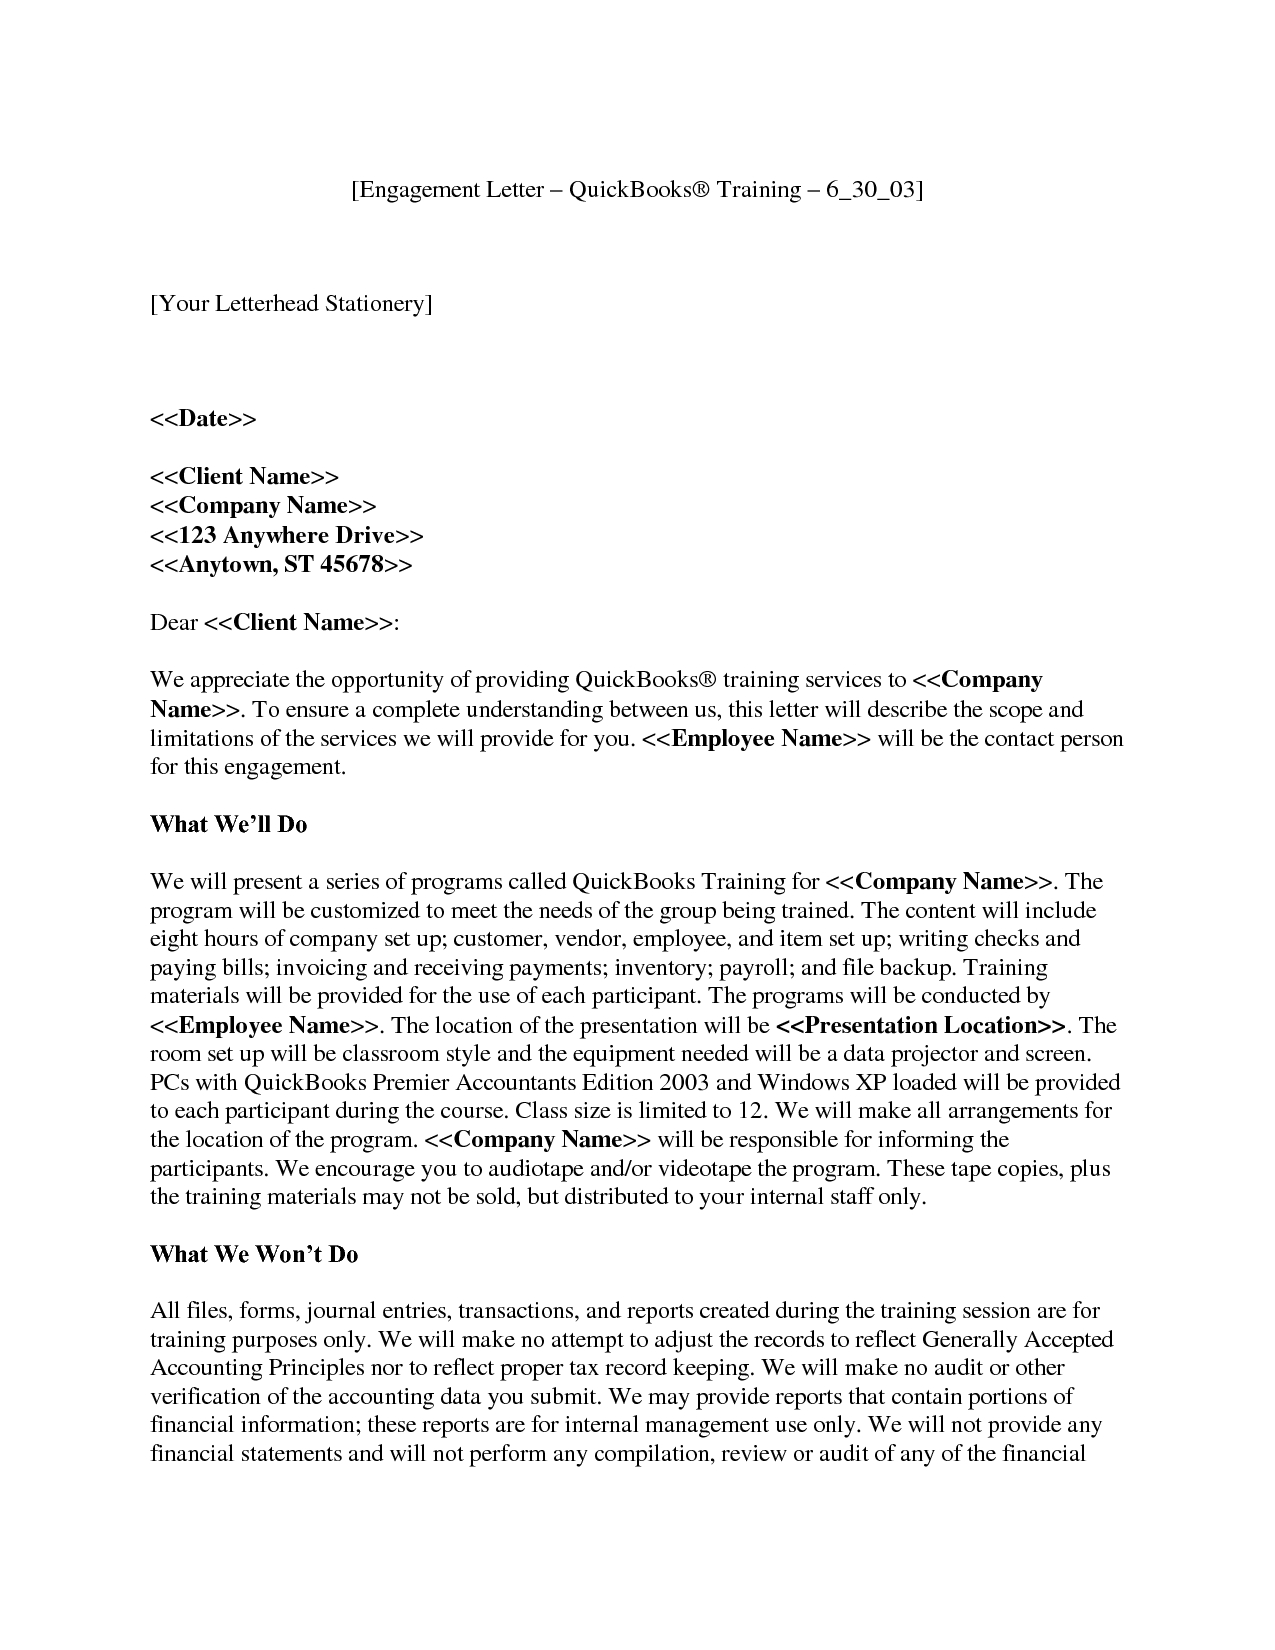 Tax preparation engagement letter template examples for Tax engagement letter template